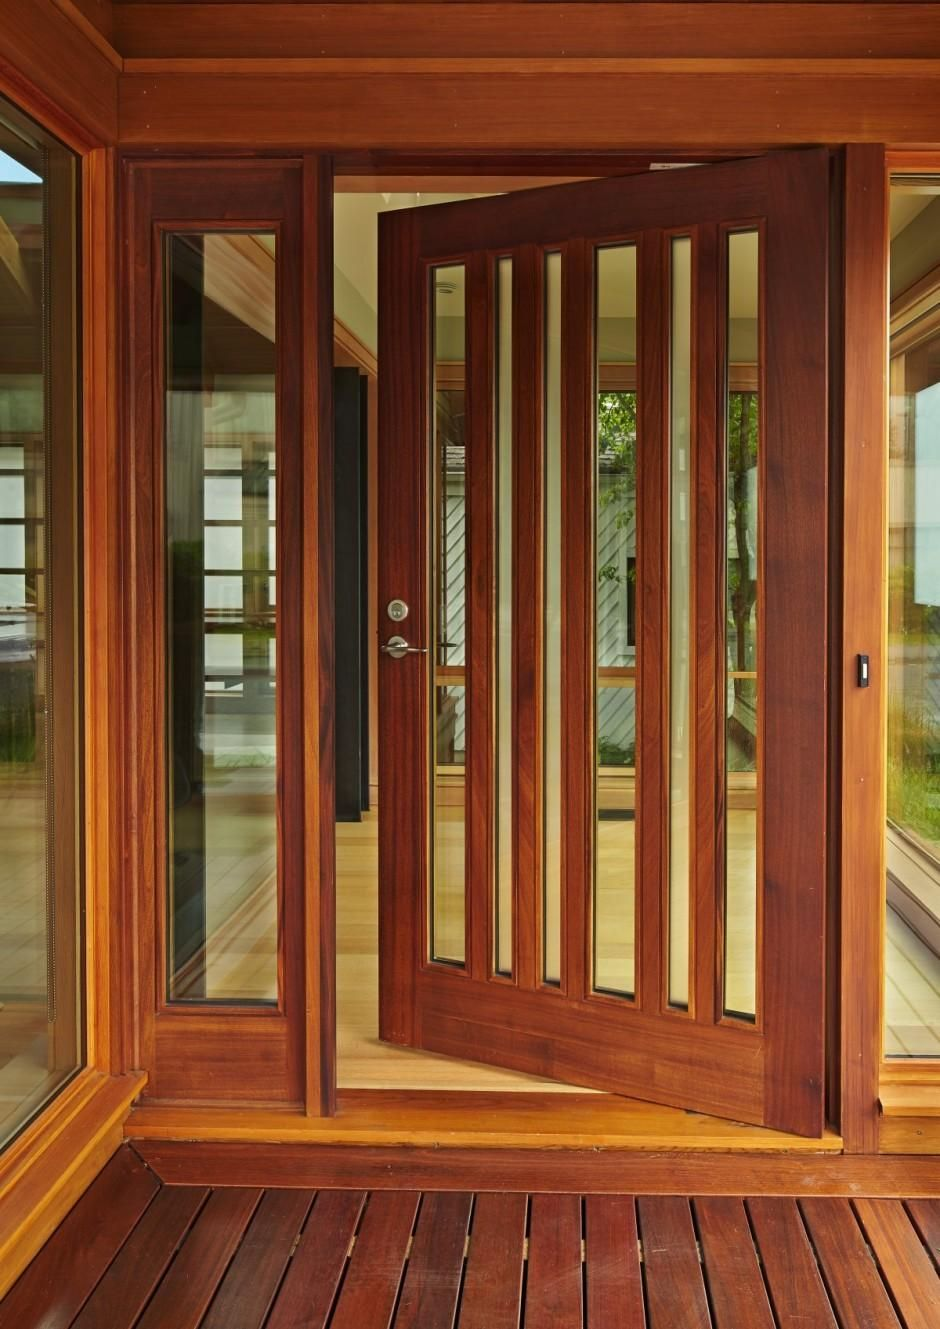 Extra large wooden door with window paneling | Classic Wooden ...